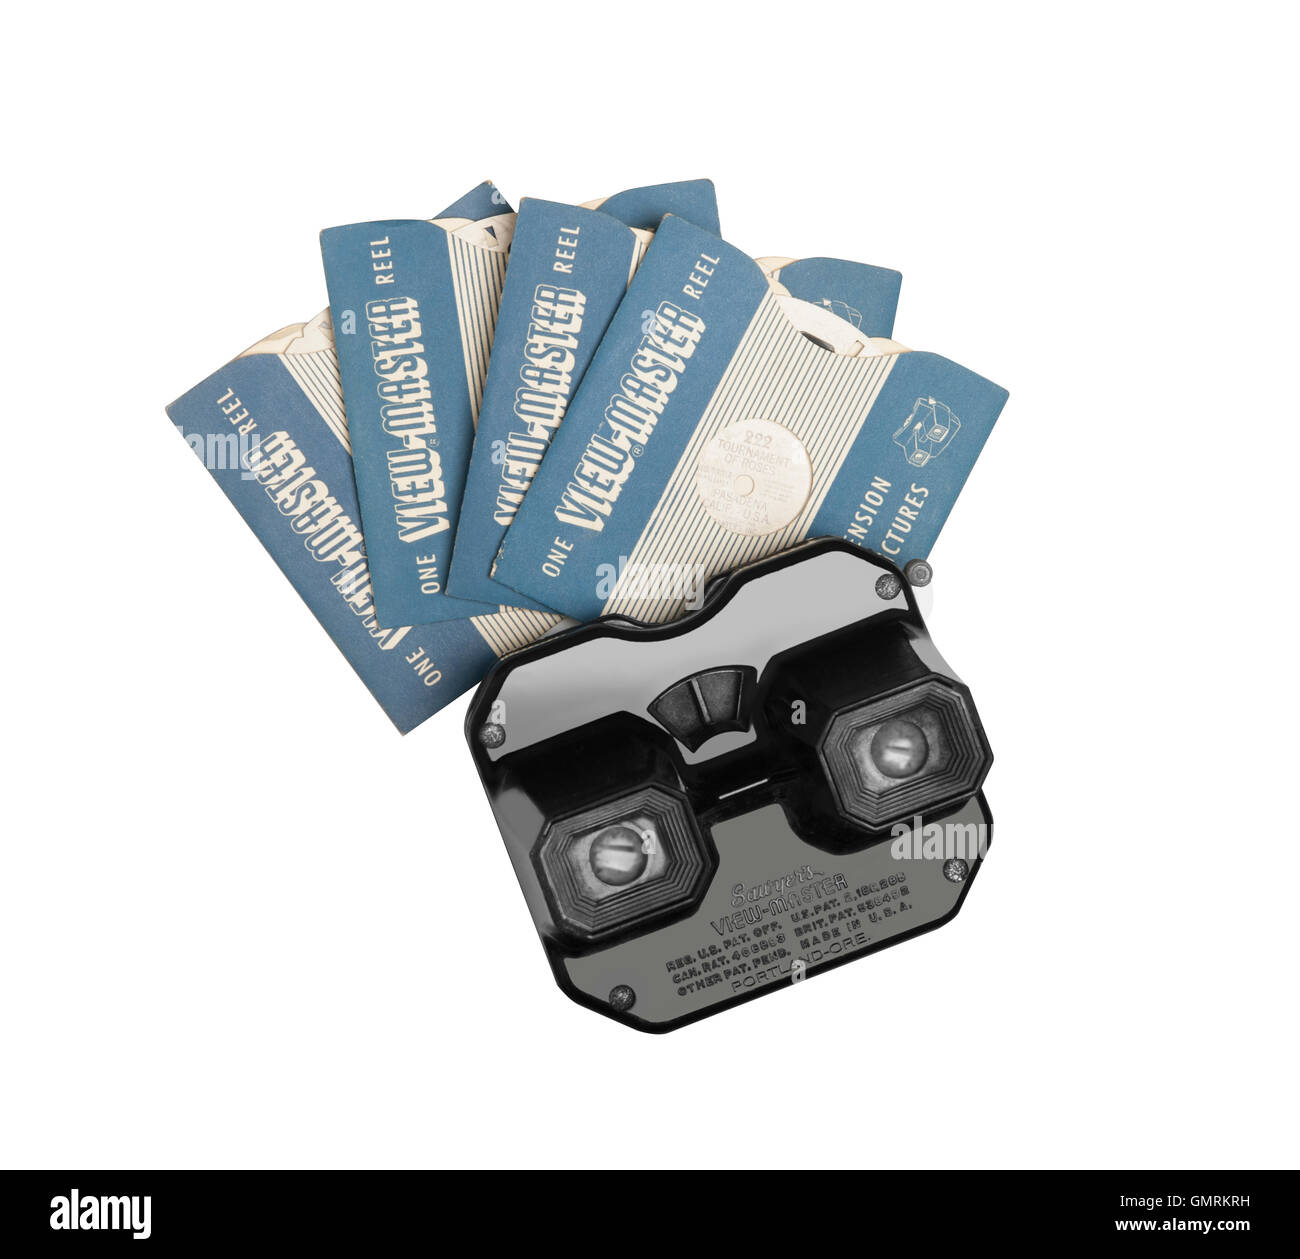 1950 Viewmaster 3D viewer with sleeved disks - Stock Image